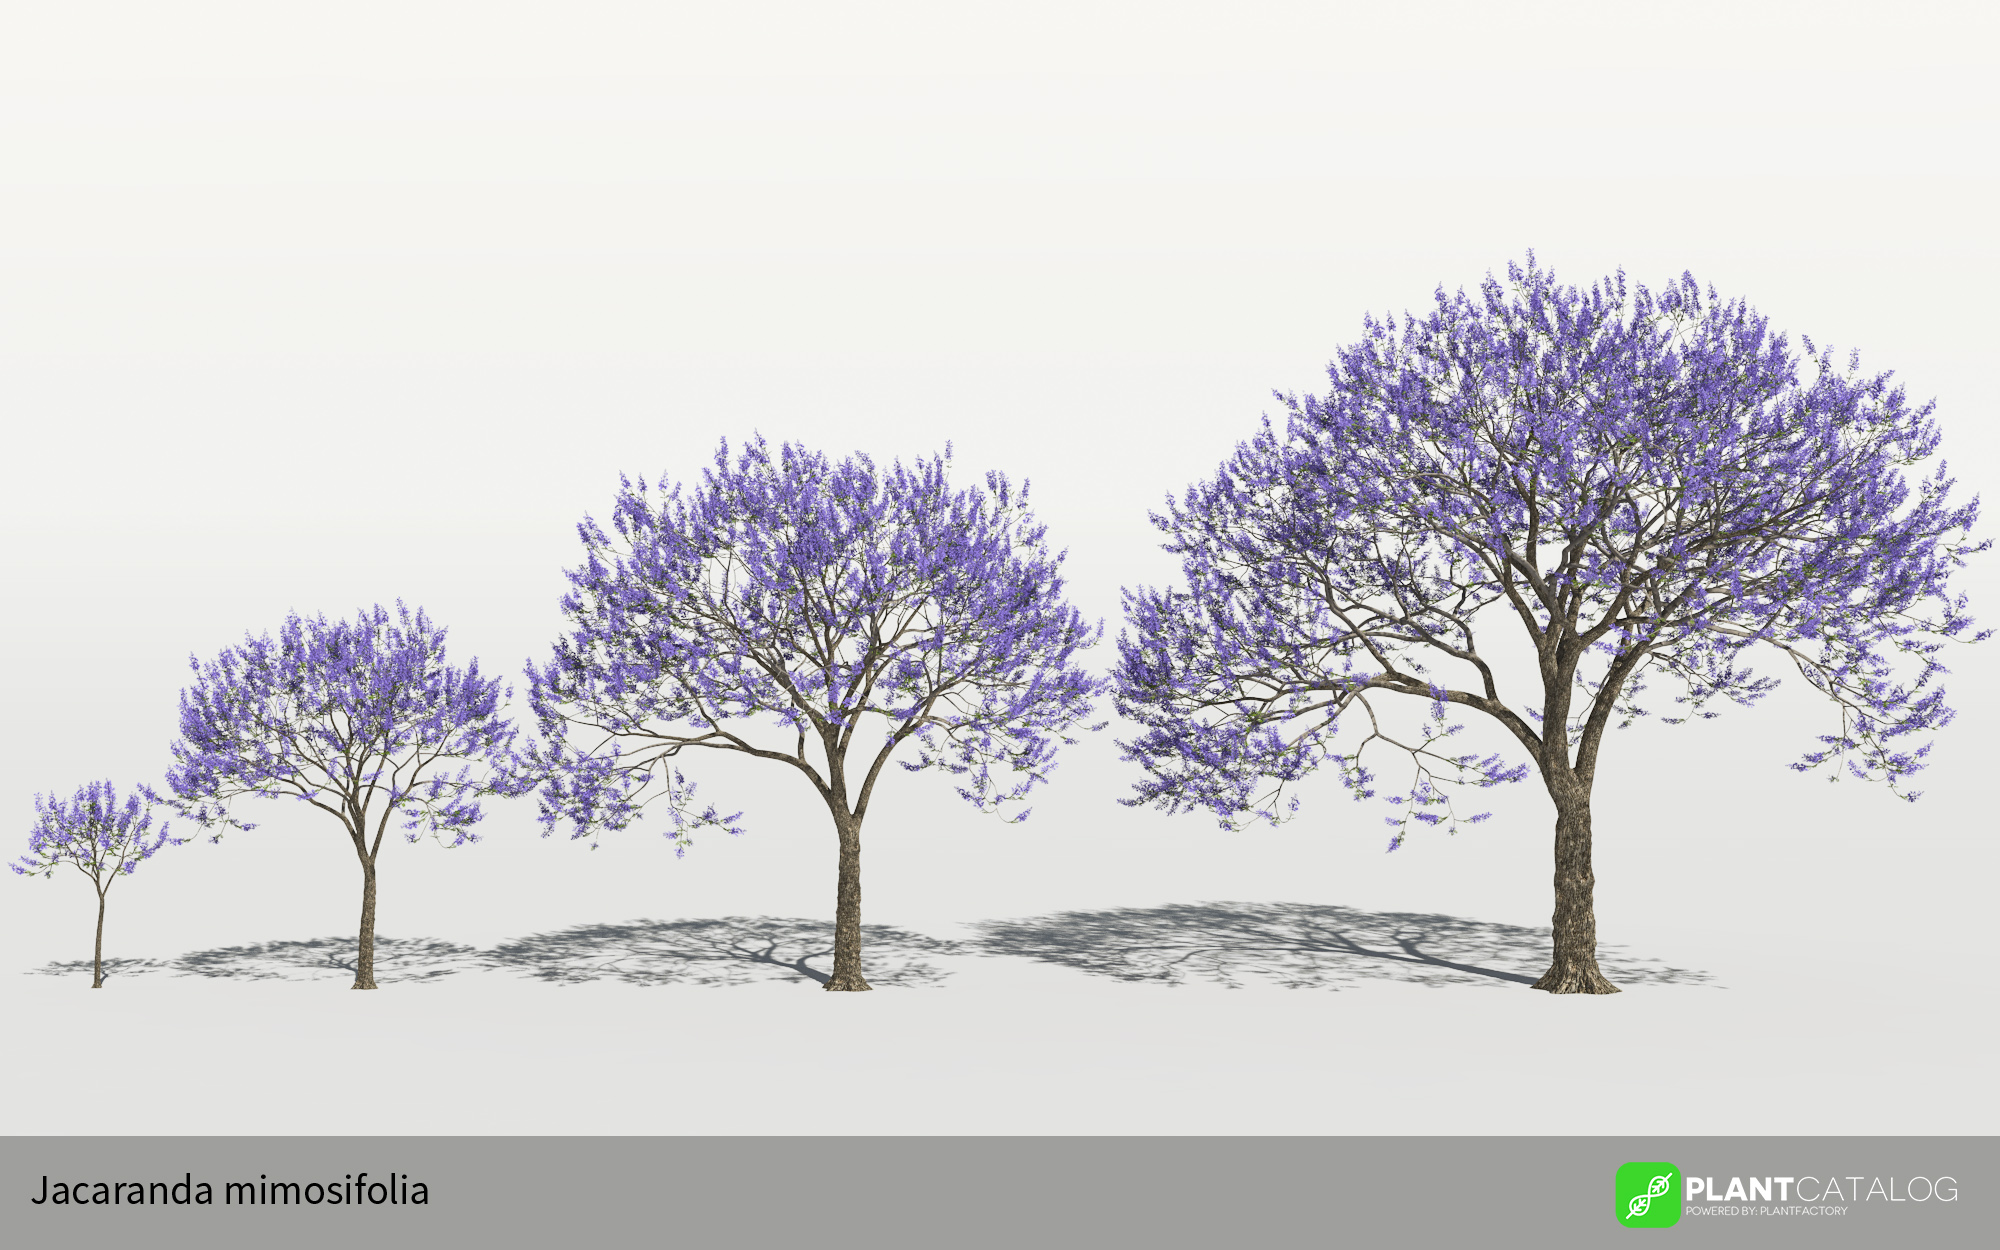 3D model of the Blue jacaranda - Jacaranda mimosifolia - from the PlantCatalog, rendered in VUE